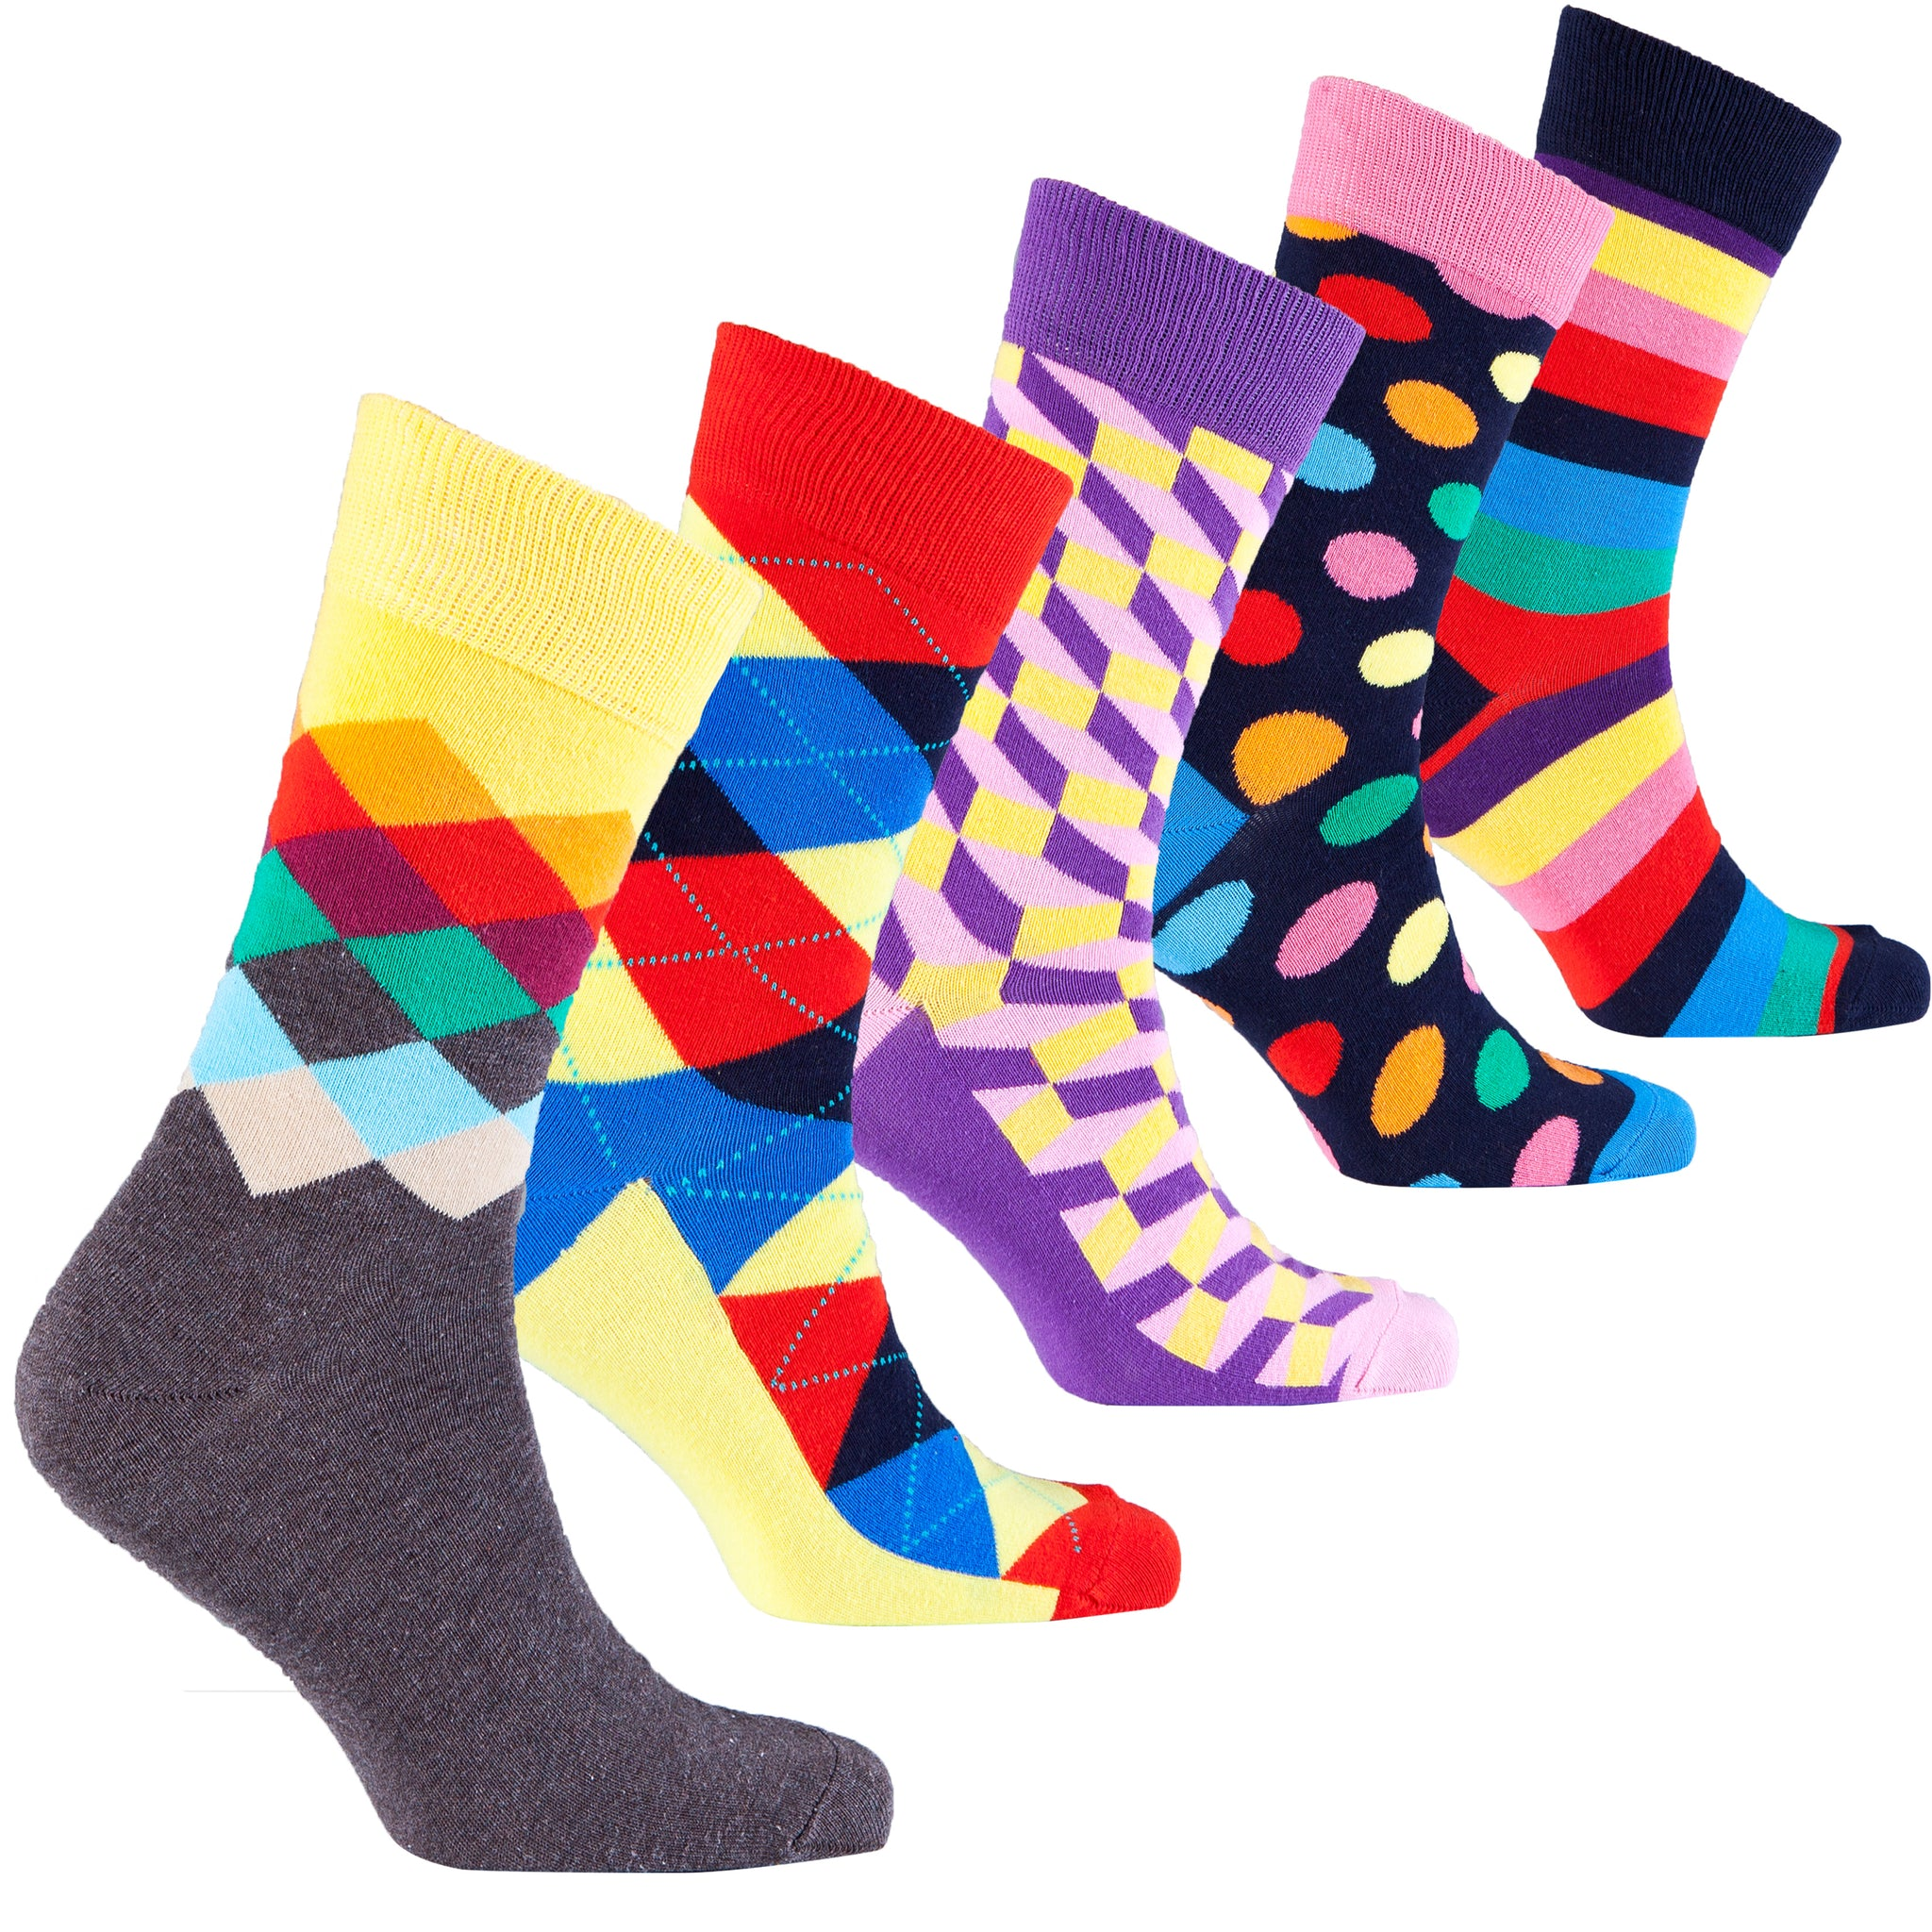 Men's Classy Mix Set Socks